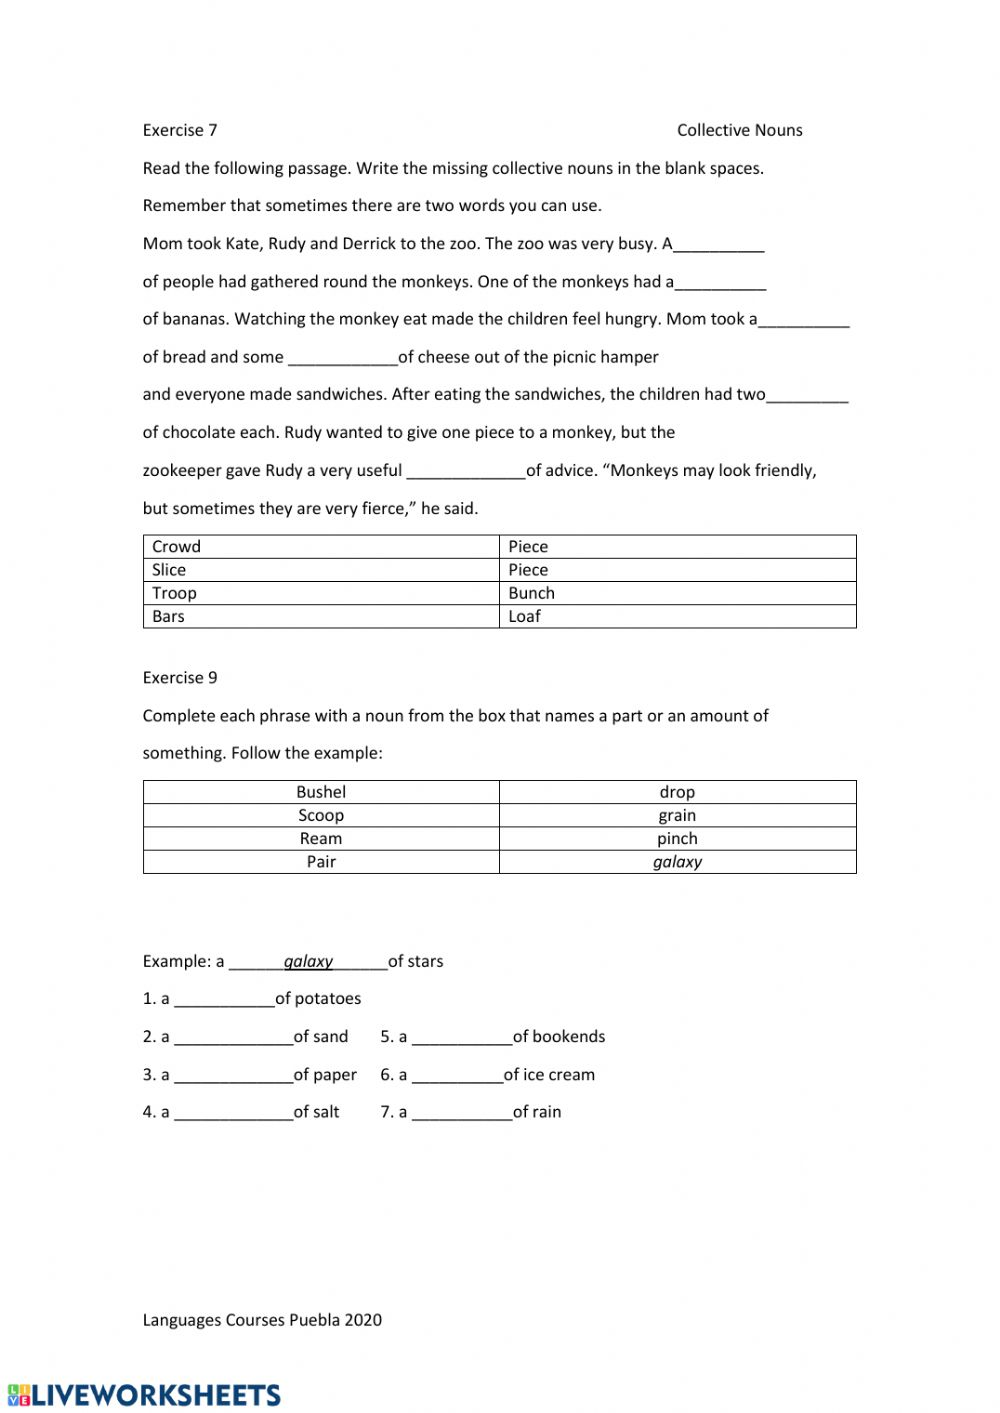 hight resolution of Collective Nouns worksheet